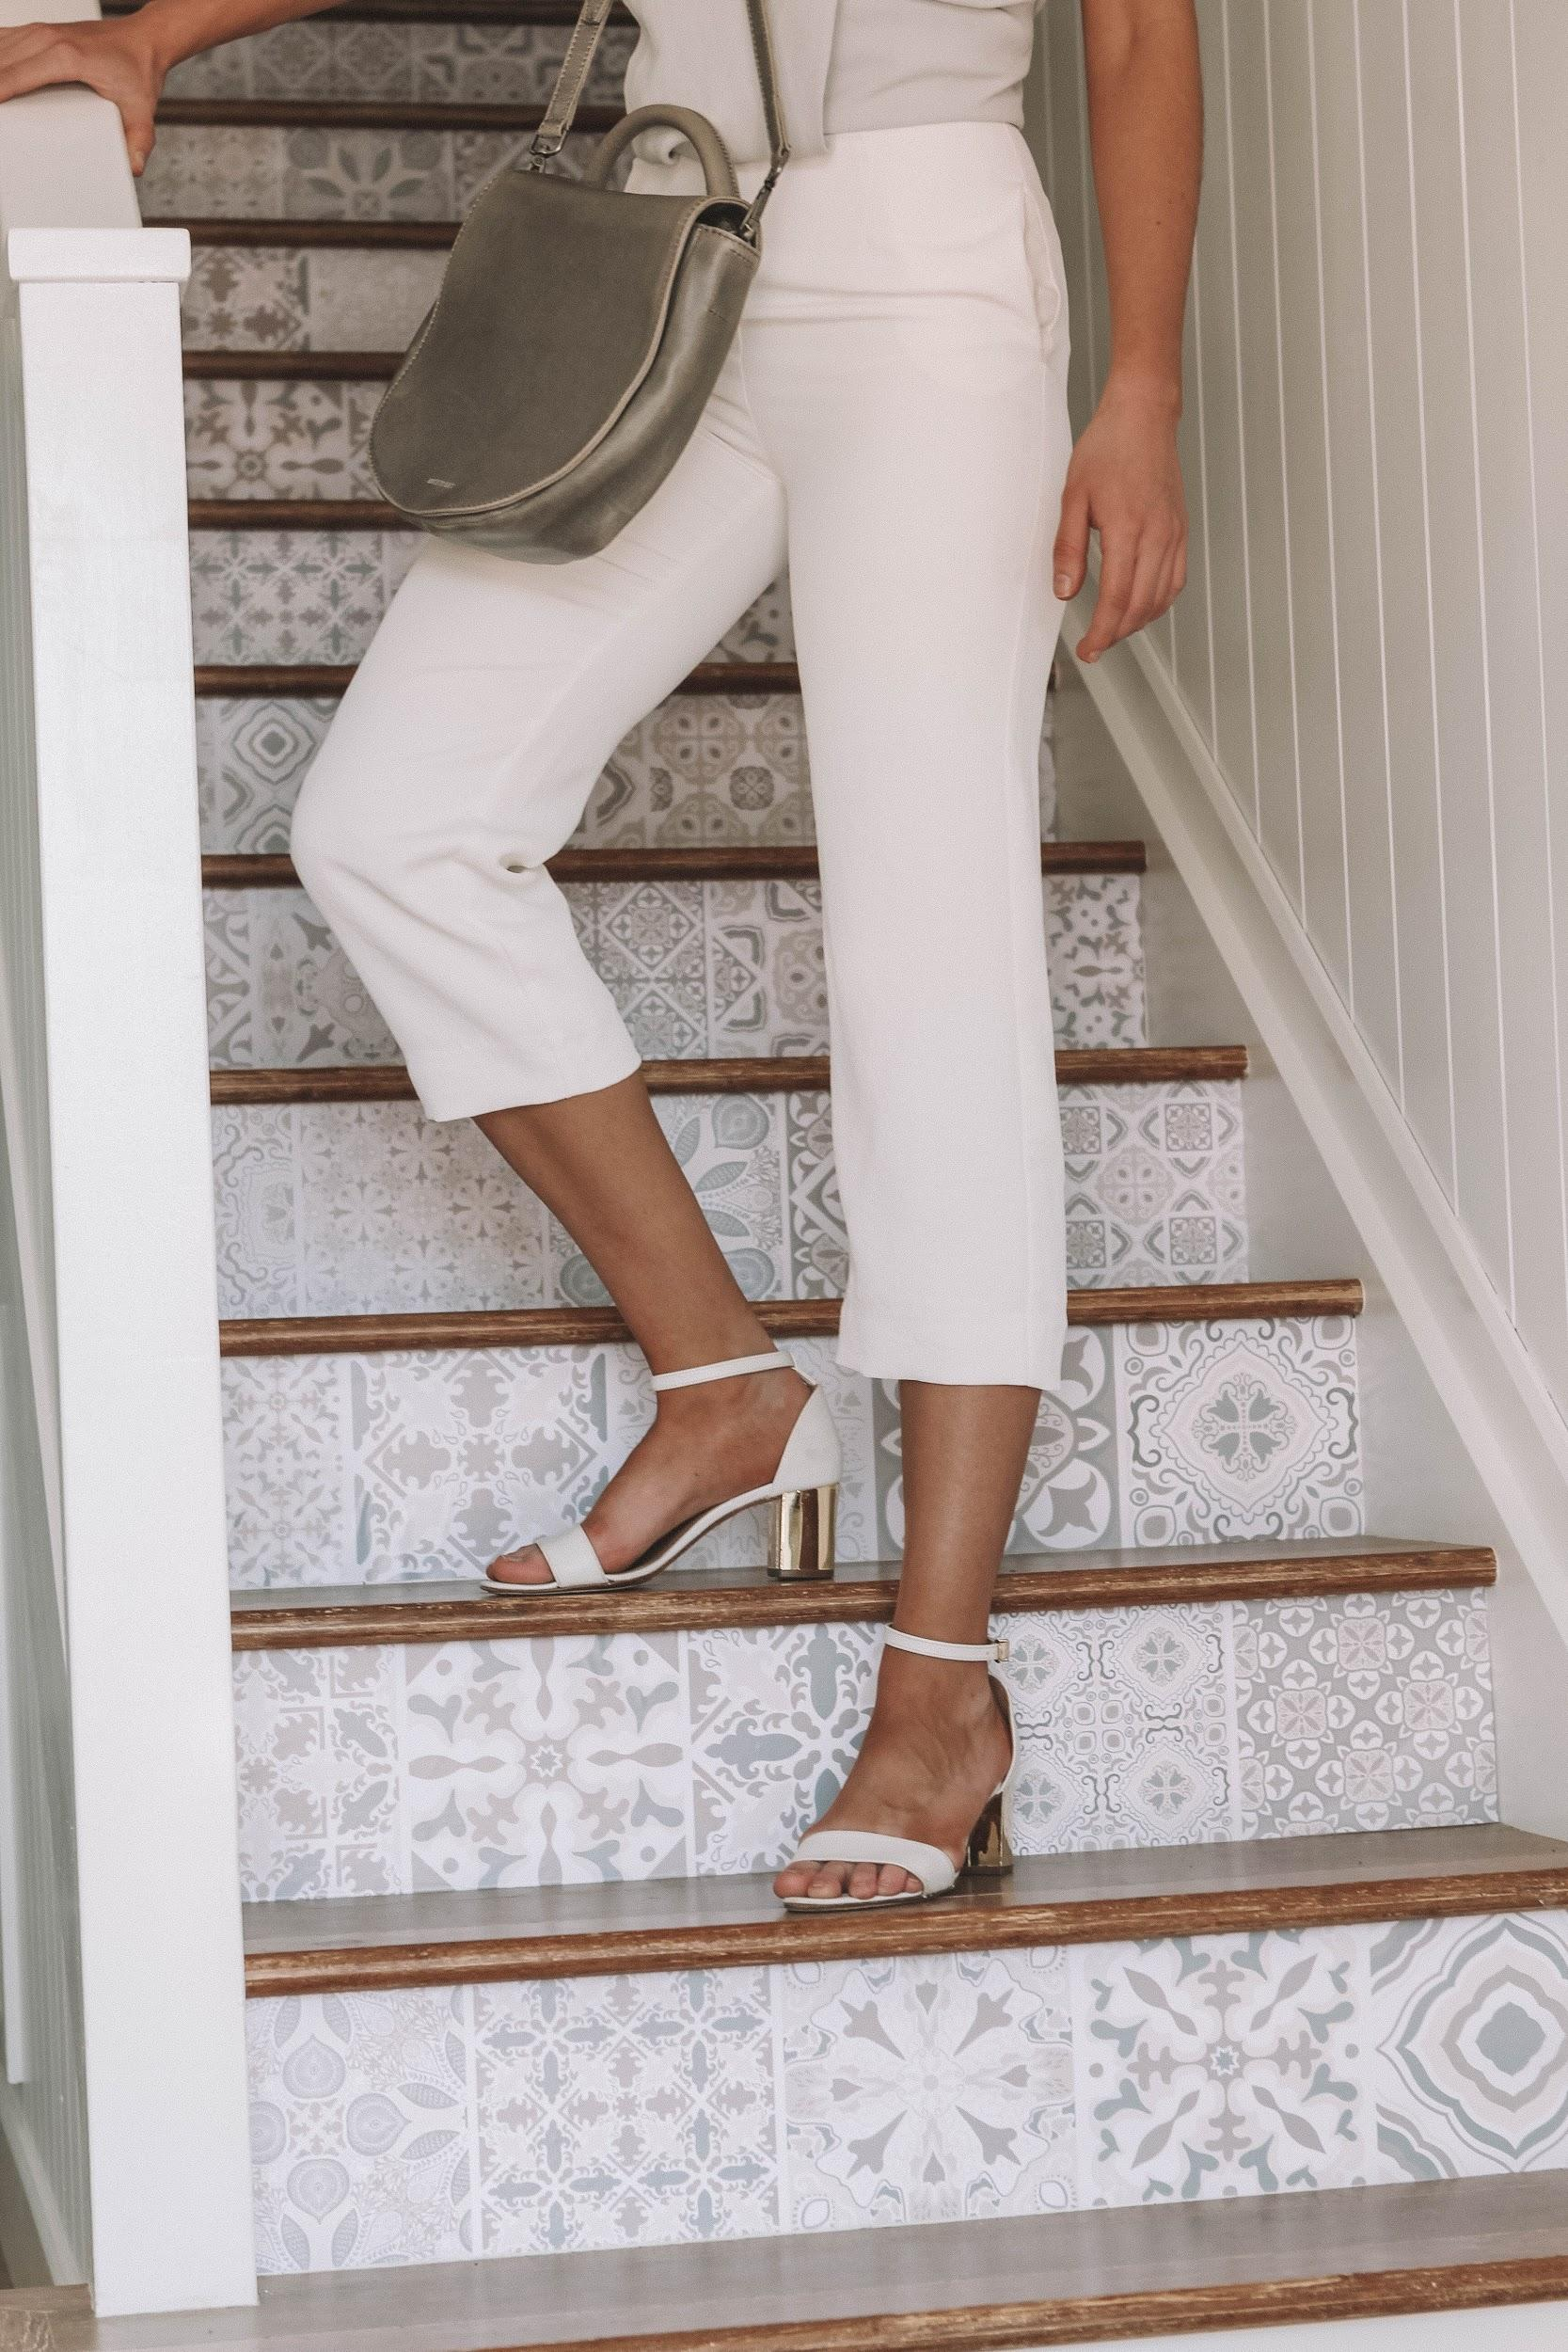 All white outfit | A Week Of Consciously Curated Outfits With Amber, Founder Of BAIIA And The Conscious Cut on The Good Trade